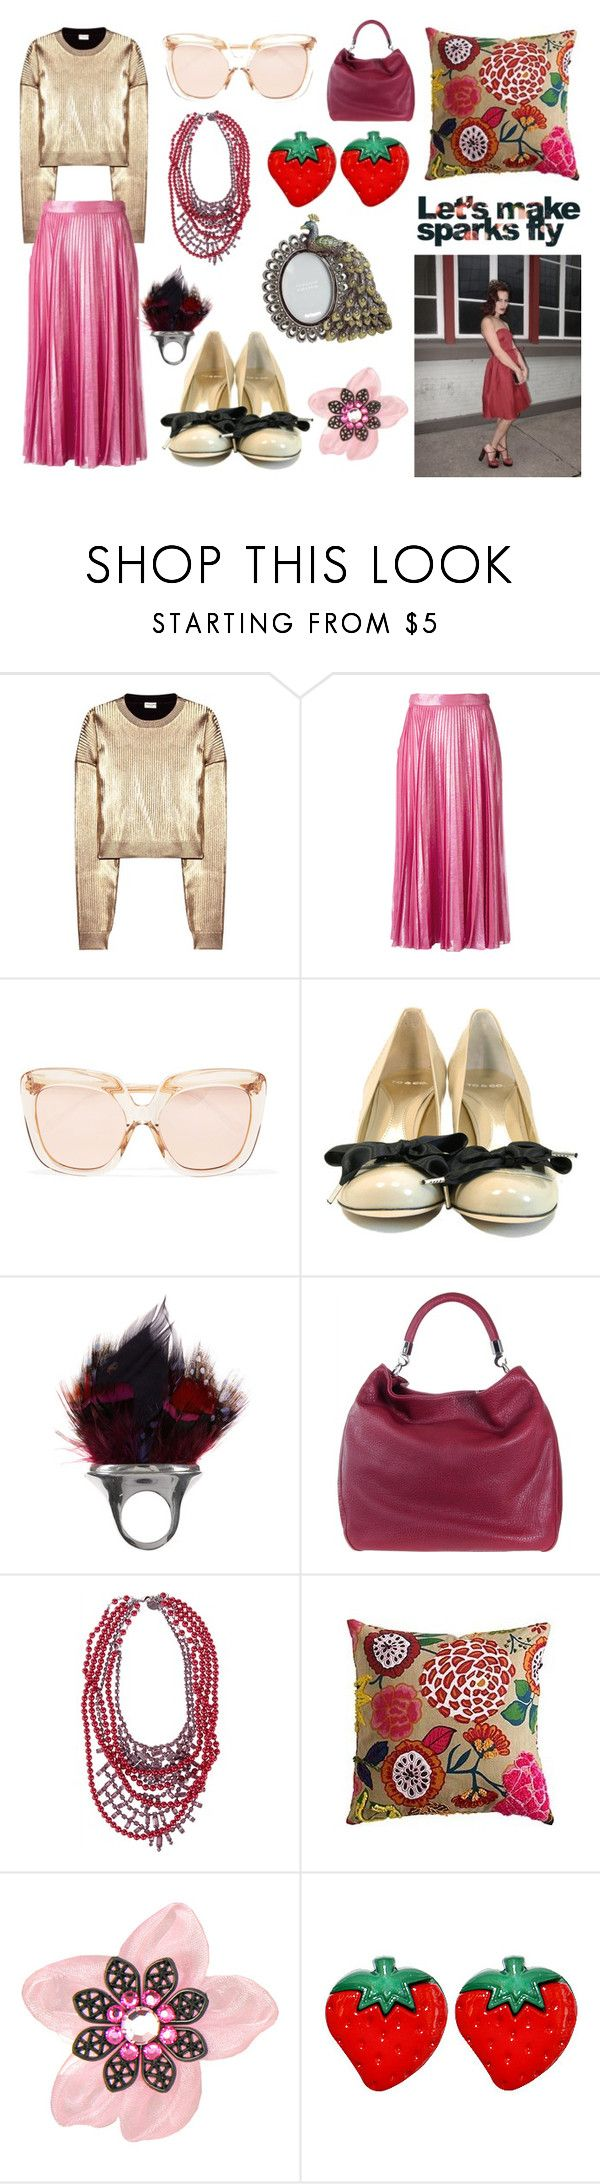 """Let's make sparks fly"" by trishoui on Polyvore featuring Yves Saint Laurent, Gucci, Linda Farrow, TO&CO., Tom Binns, Pier 1 Imports, Tarina Tarantino and Dollydagger"